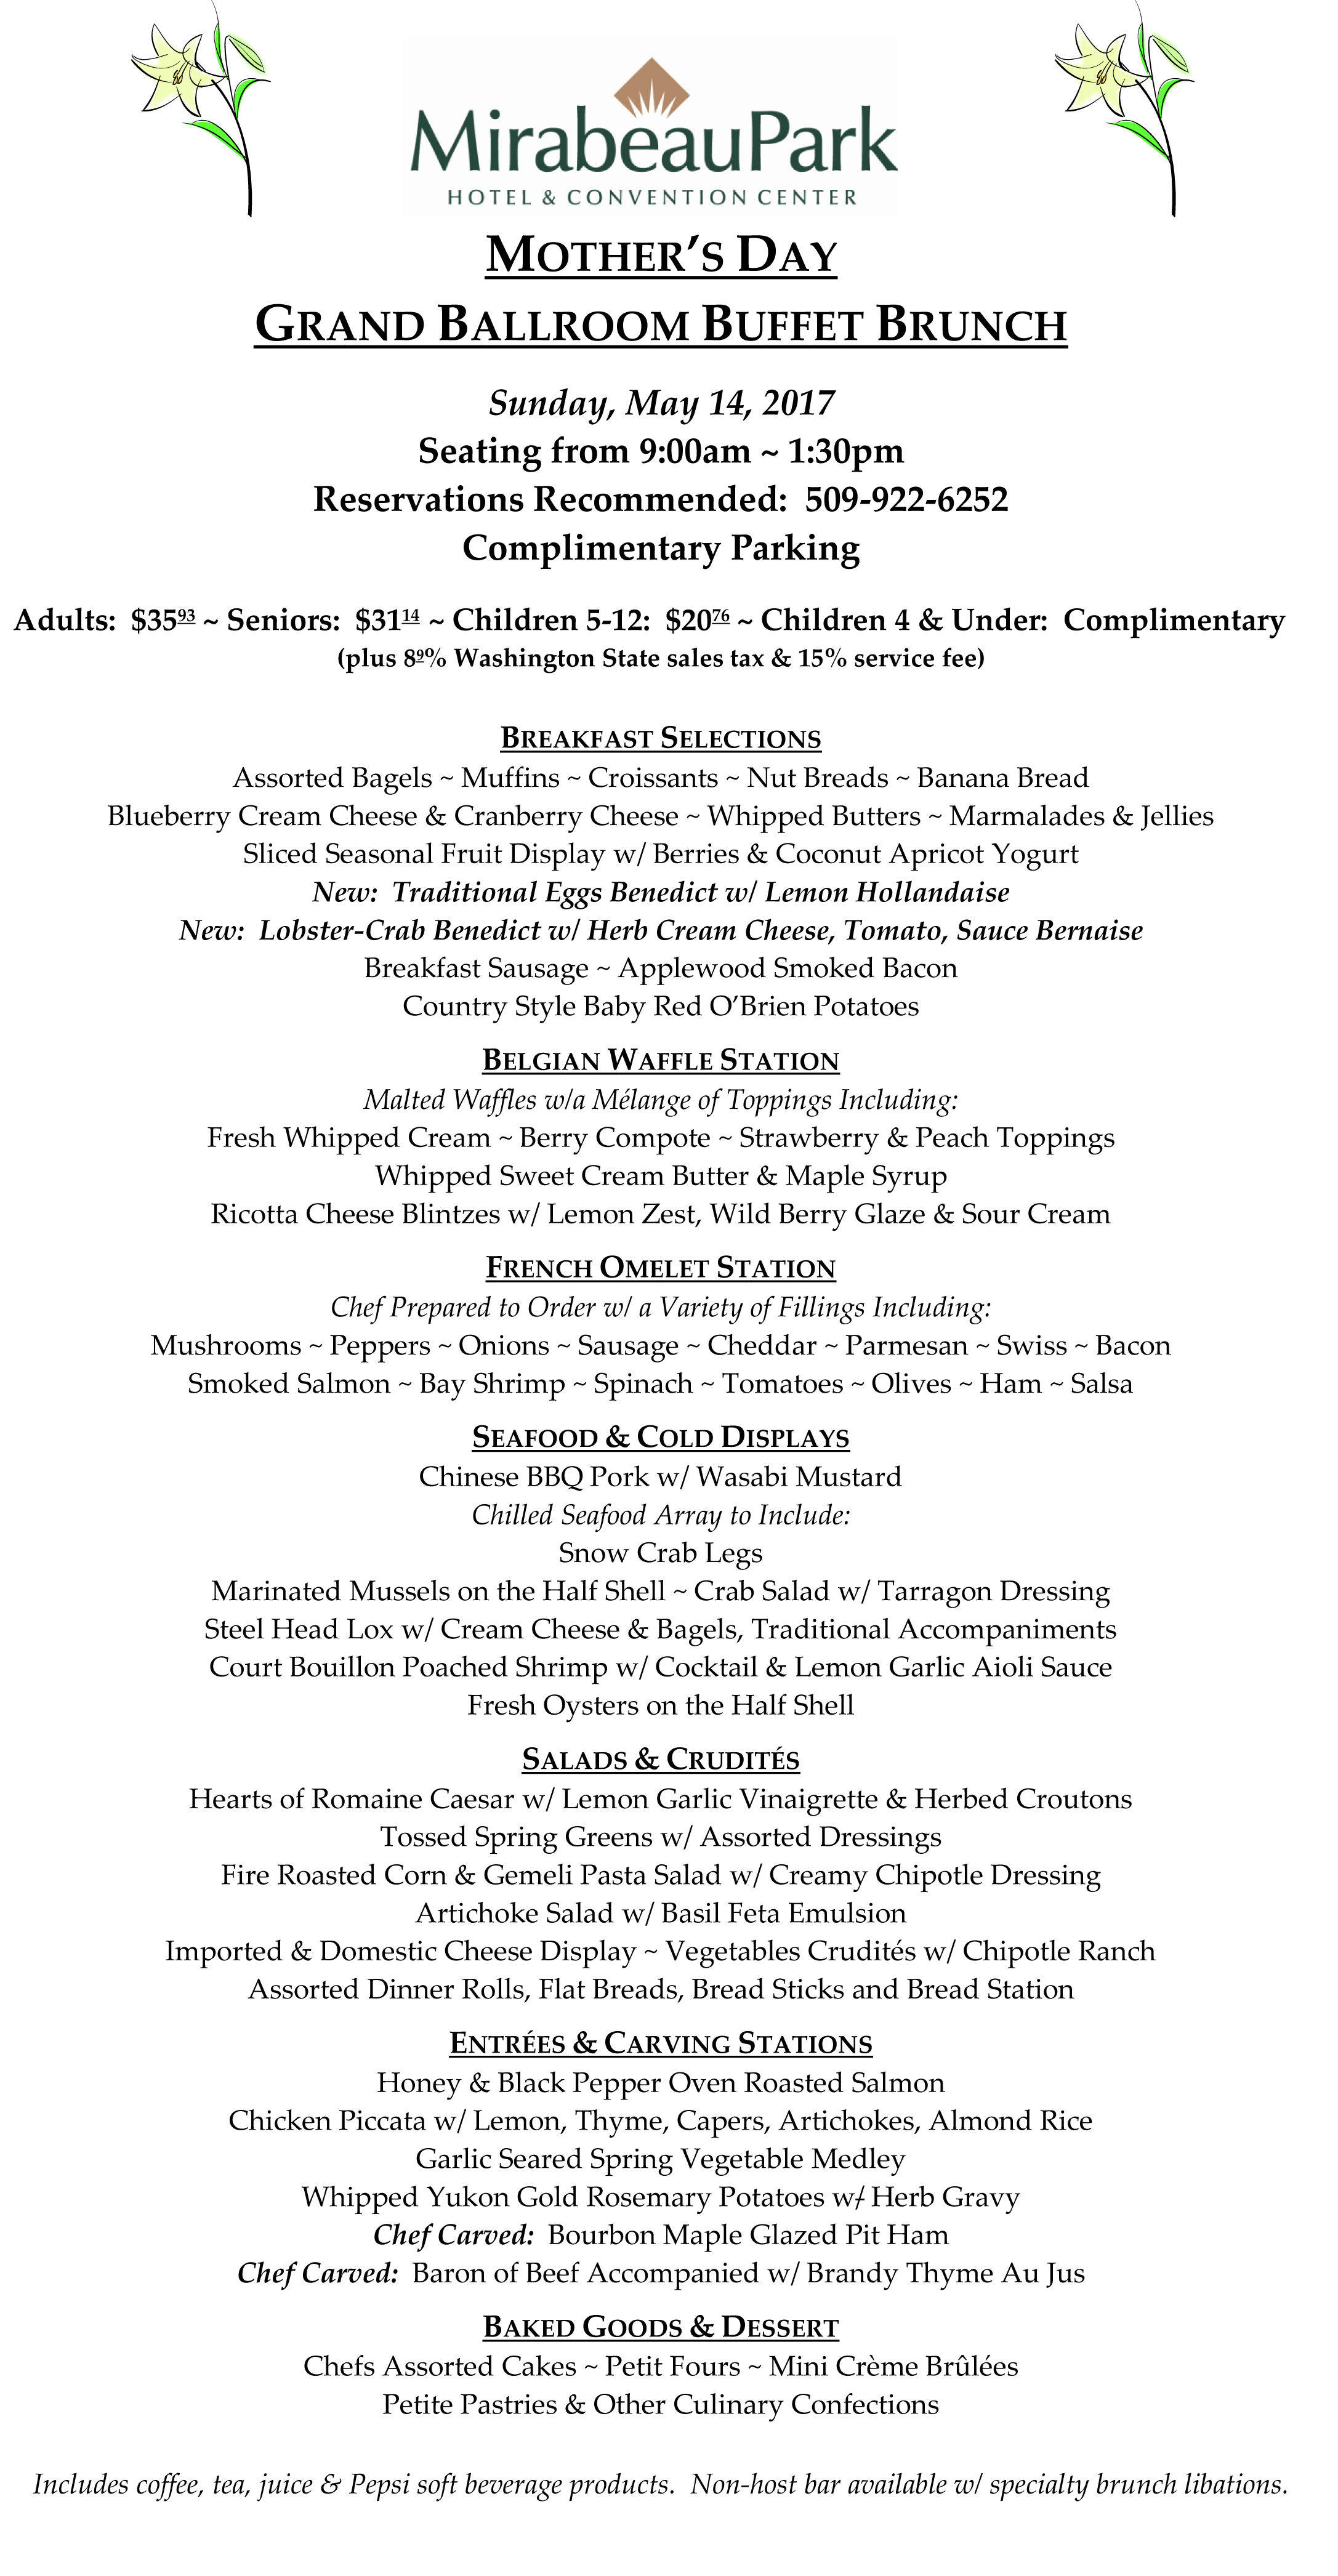 Mother's Day Buffet Menu 2017 copy